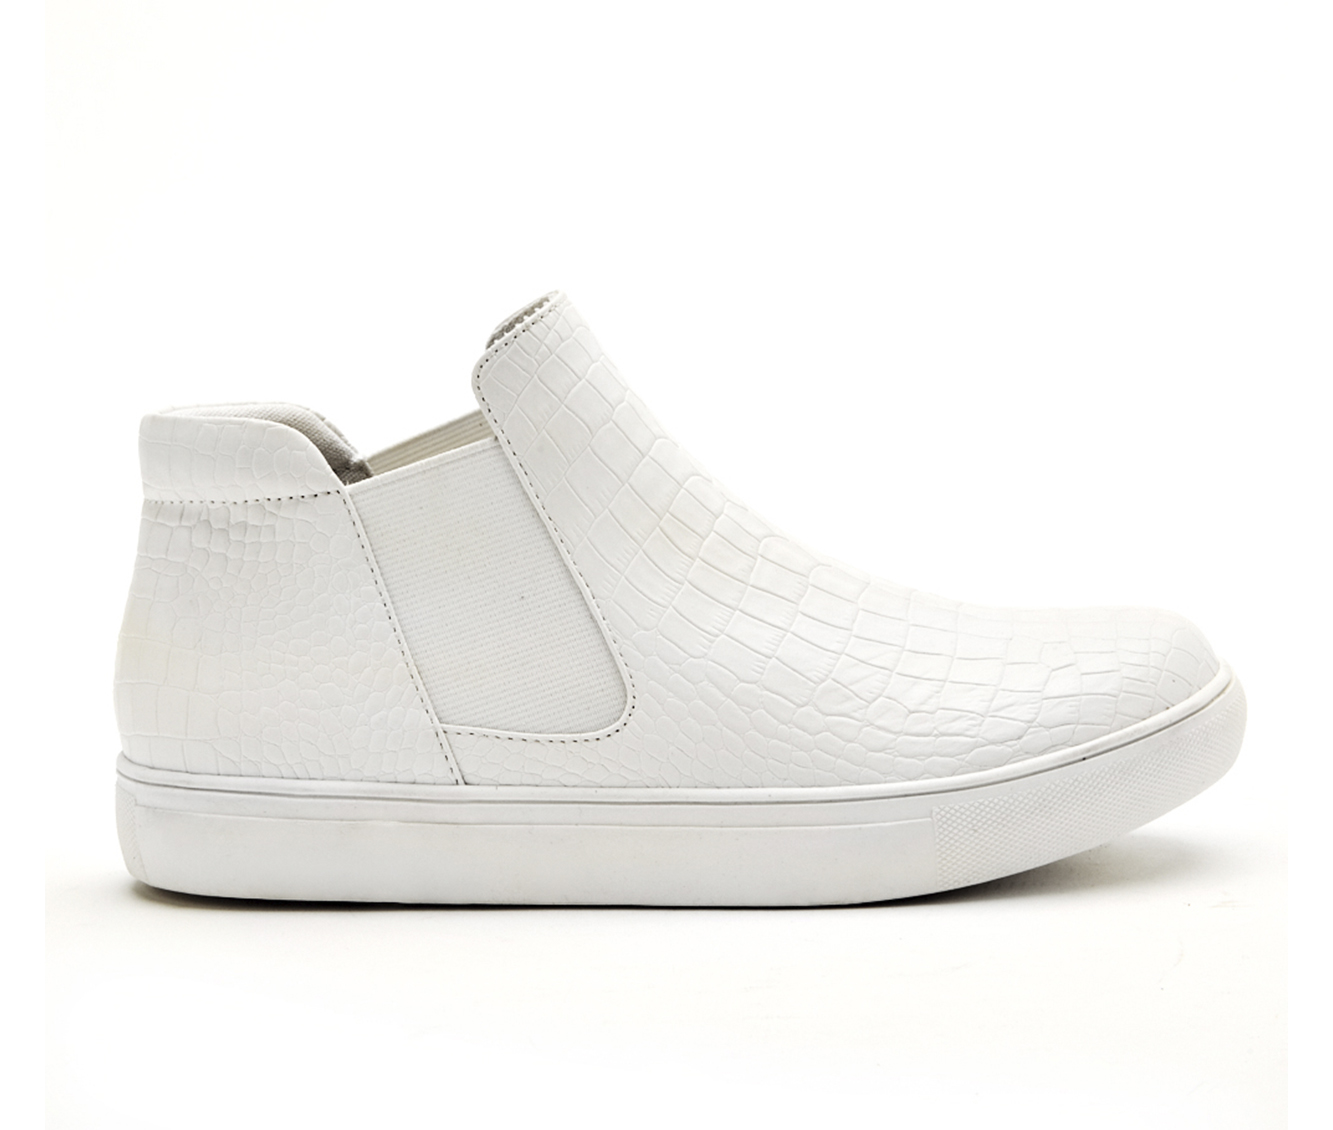 Coconuts Harlan Women's Shoe (White Faux Leather)